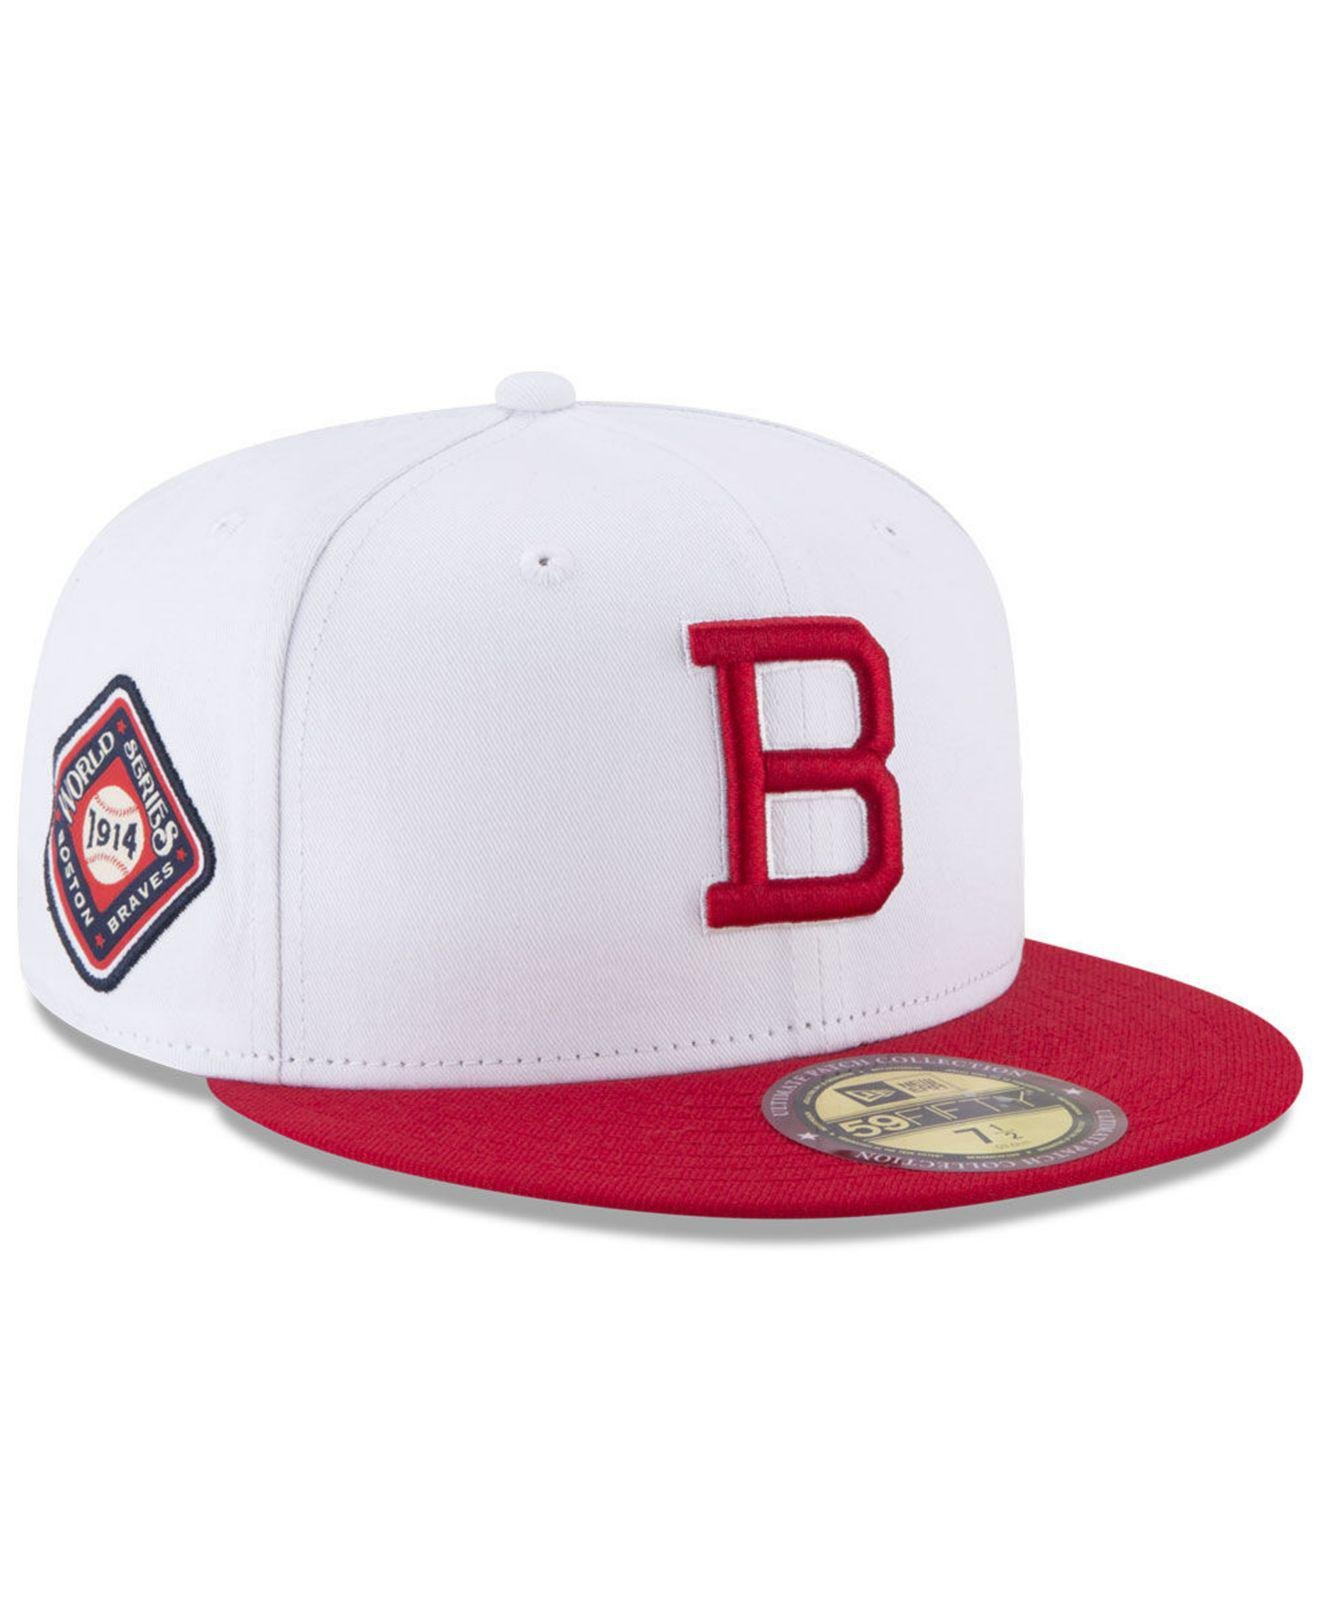 9eb105a5701 Lyst - KTZ Ultimate Patch Collection World Series 2.0 59fifty Fitted ...